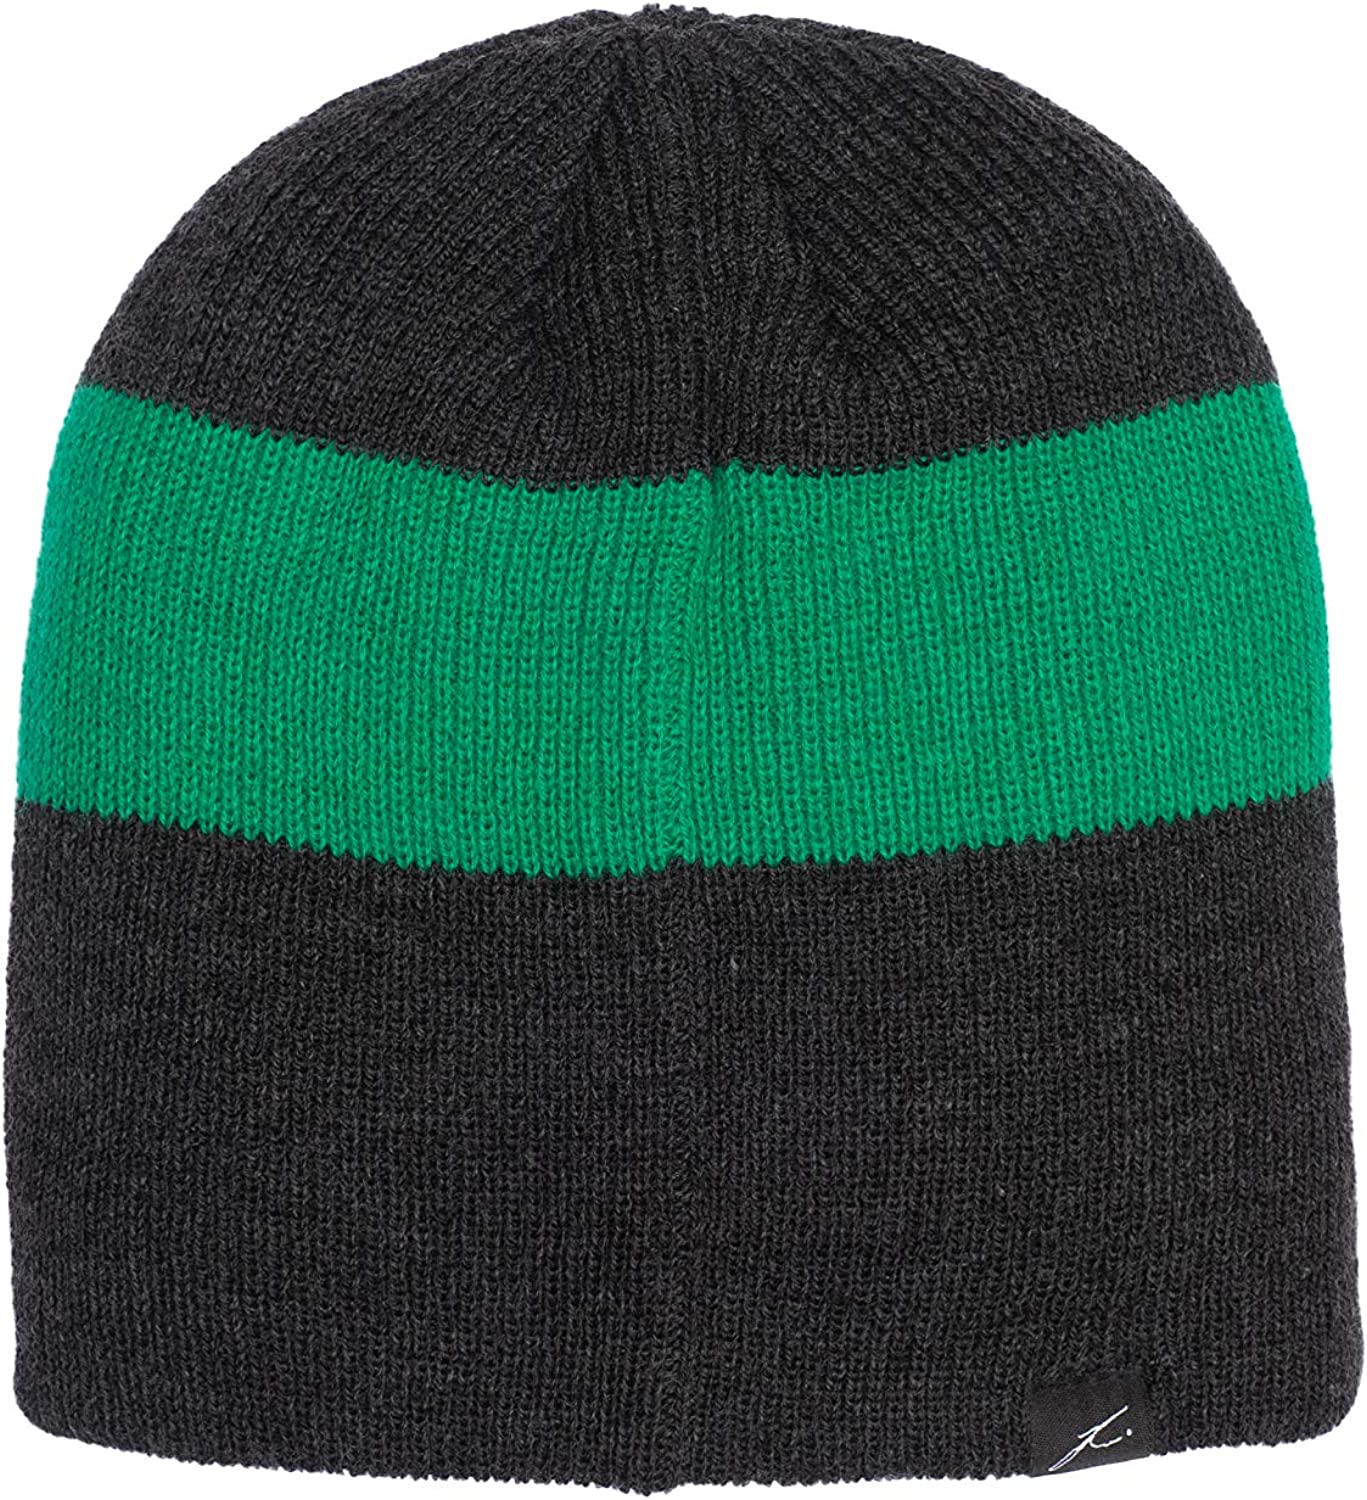 Fi Collection Santos Laguna Fury Knit Beanie Hat for Winter Cold